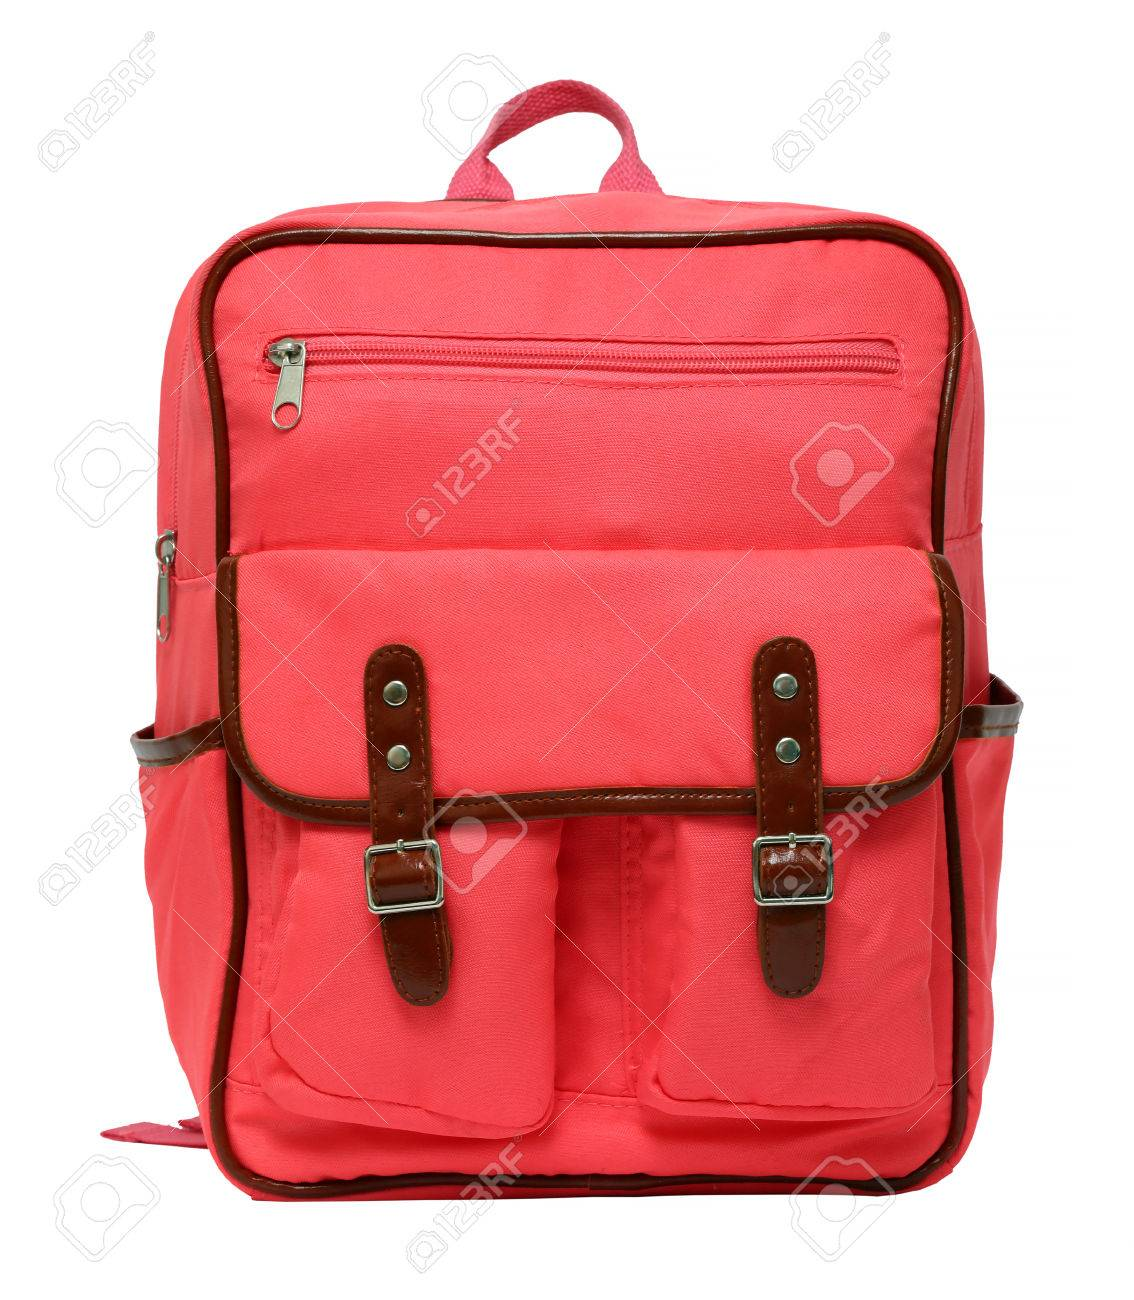 pink school backpack isolated on white background - 36490566